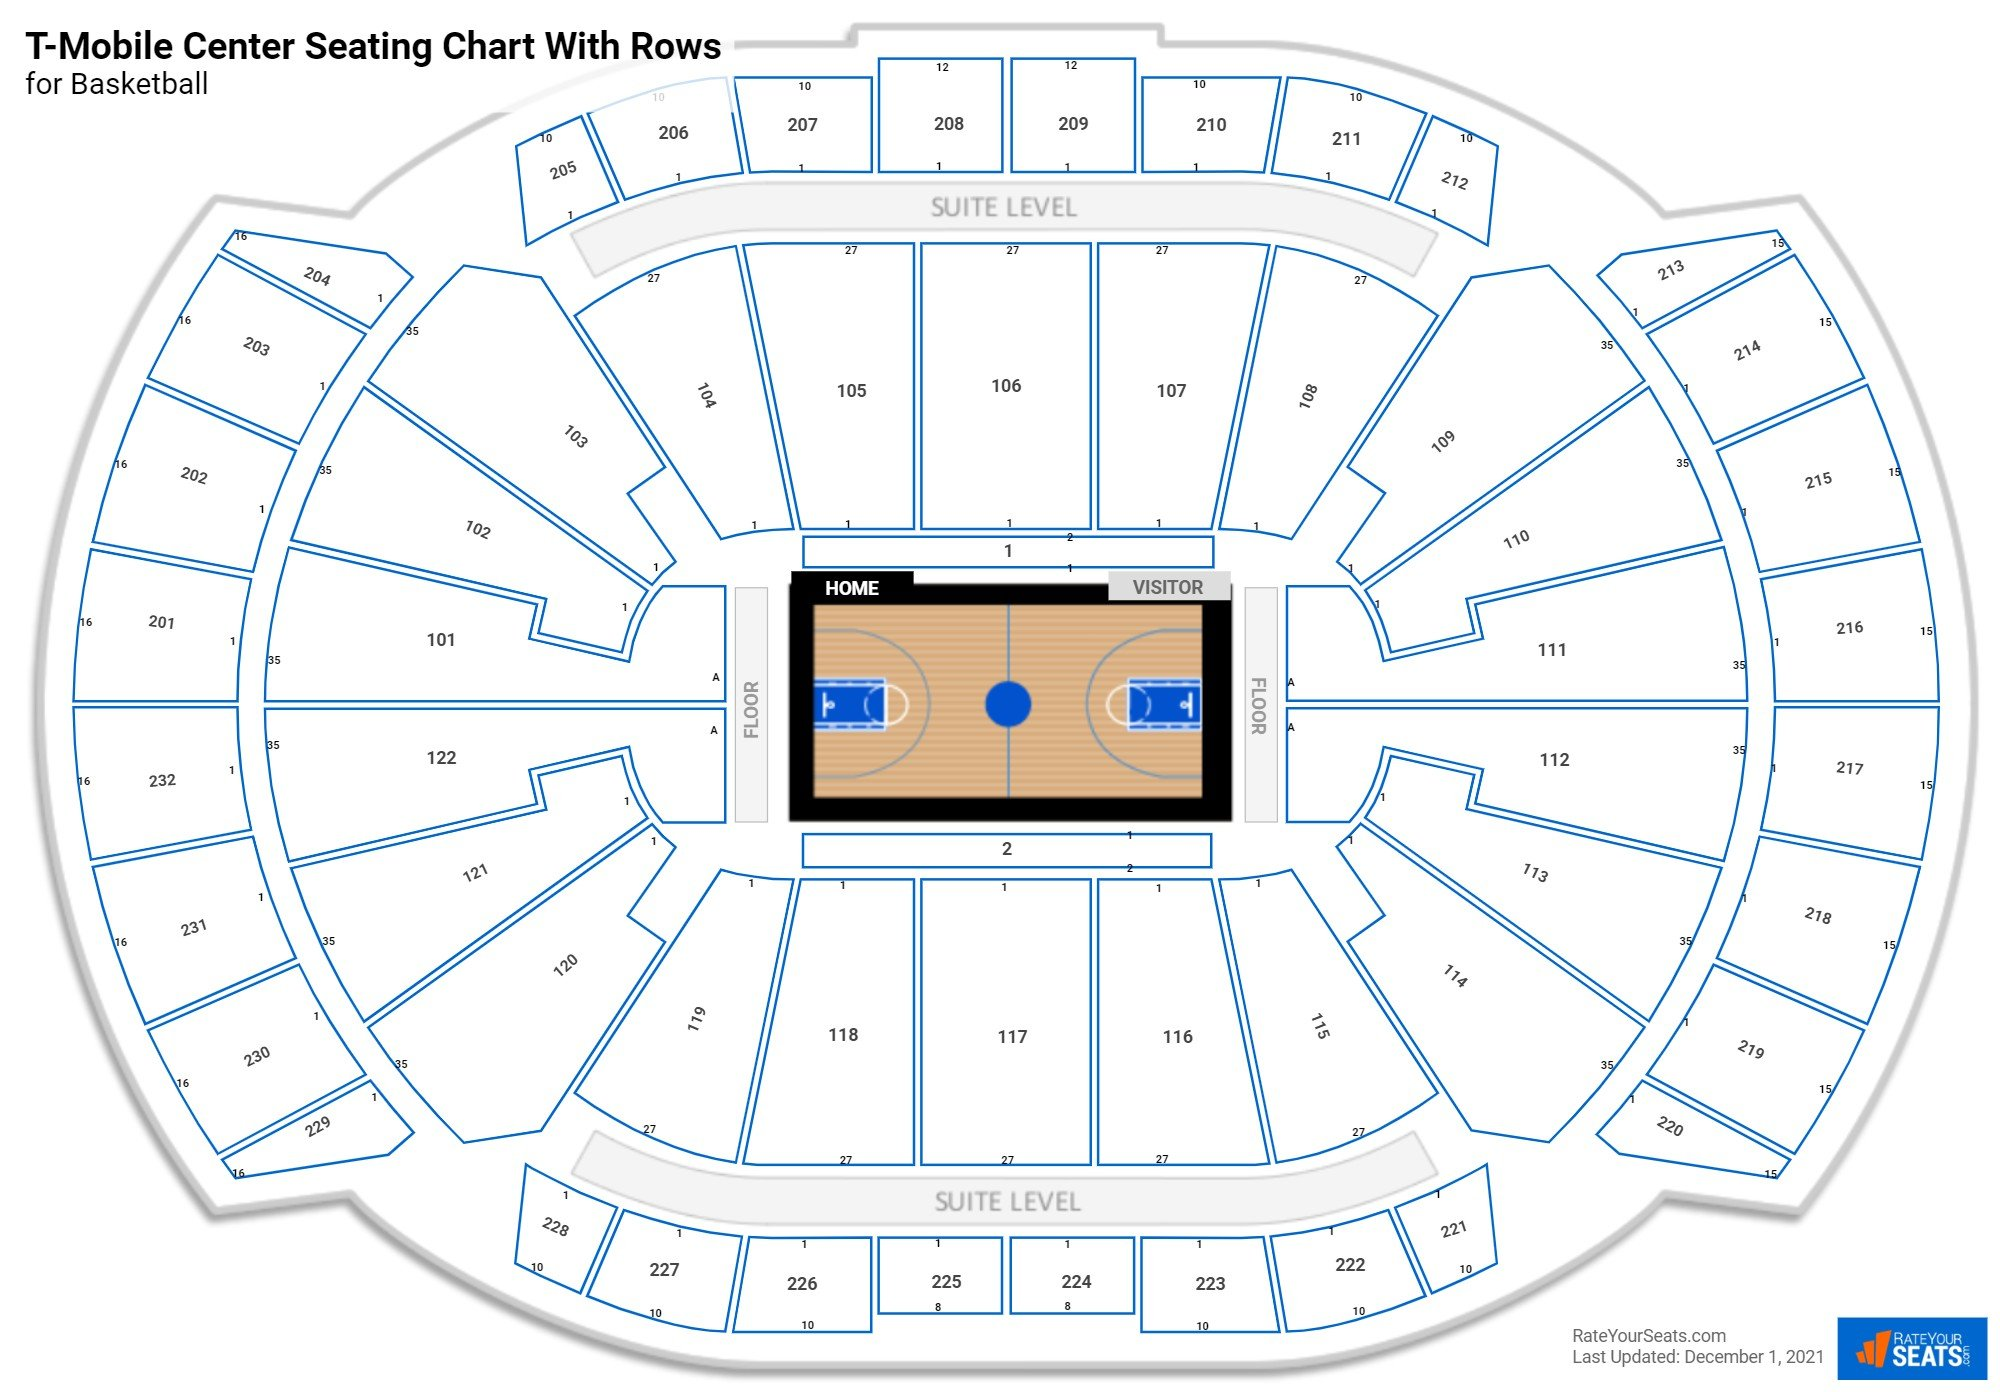 Sprint Center seating chart with rows basketball